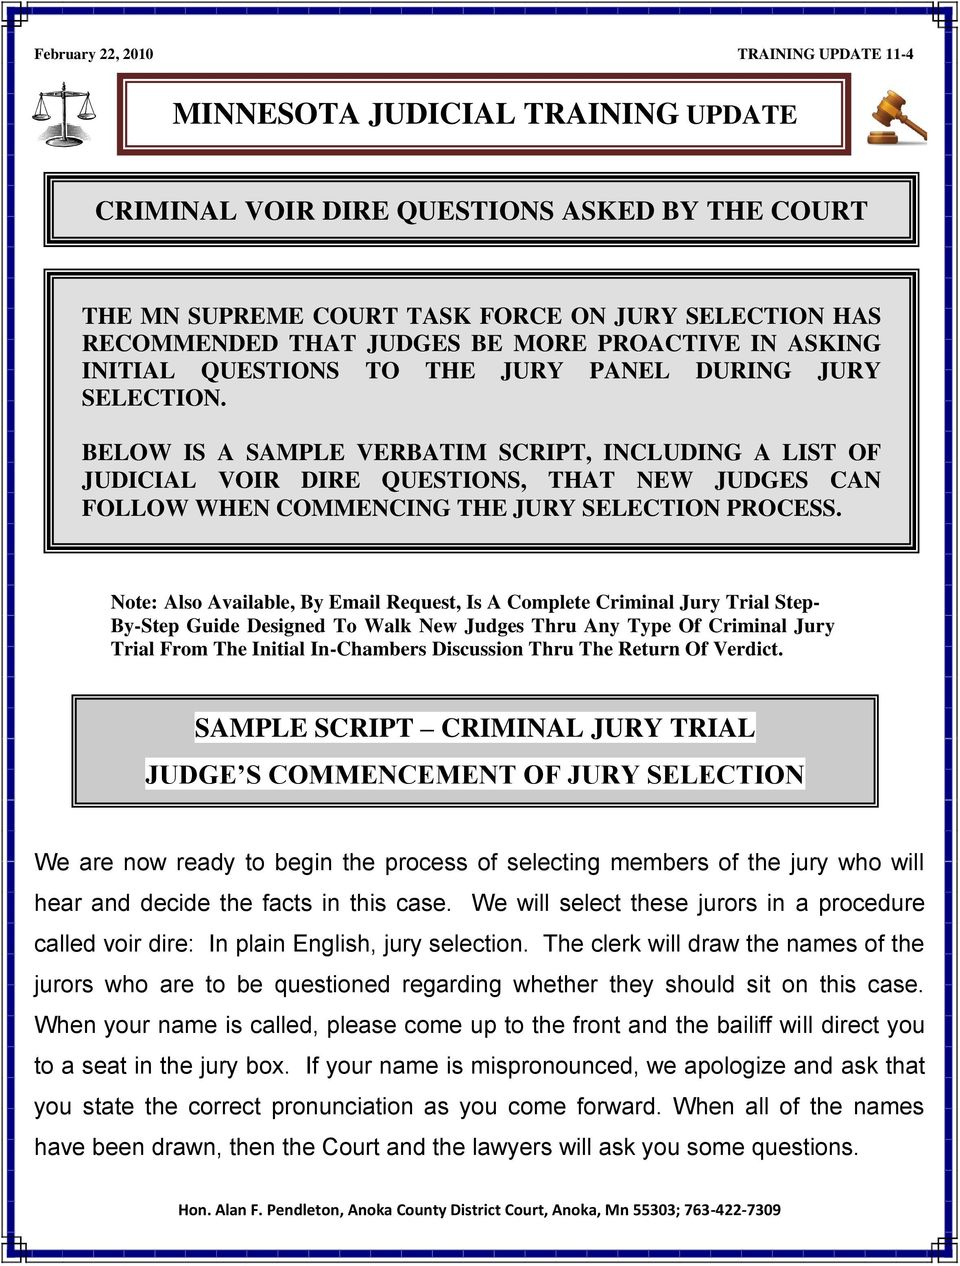 BELOW IS A SAMPLE VERBATIM SCRIPT, INCLUDING A LIST OF JUDICIAL VOIR DIRE QUESTIONS, THAT NEW JUDGES CAN FOLLOW WHEN COMMENCING THE JURY SELECTION PROCESS.